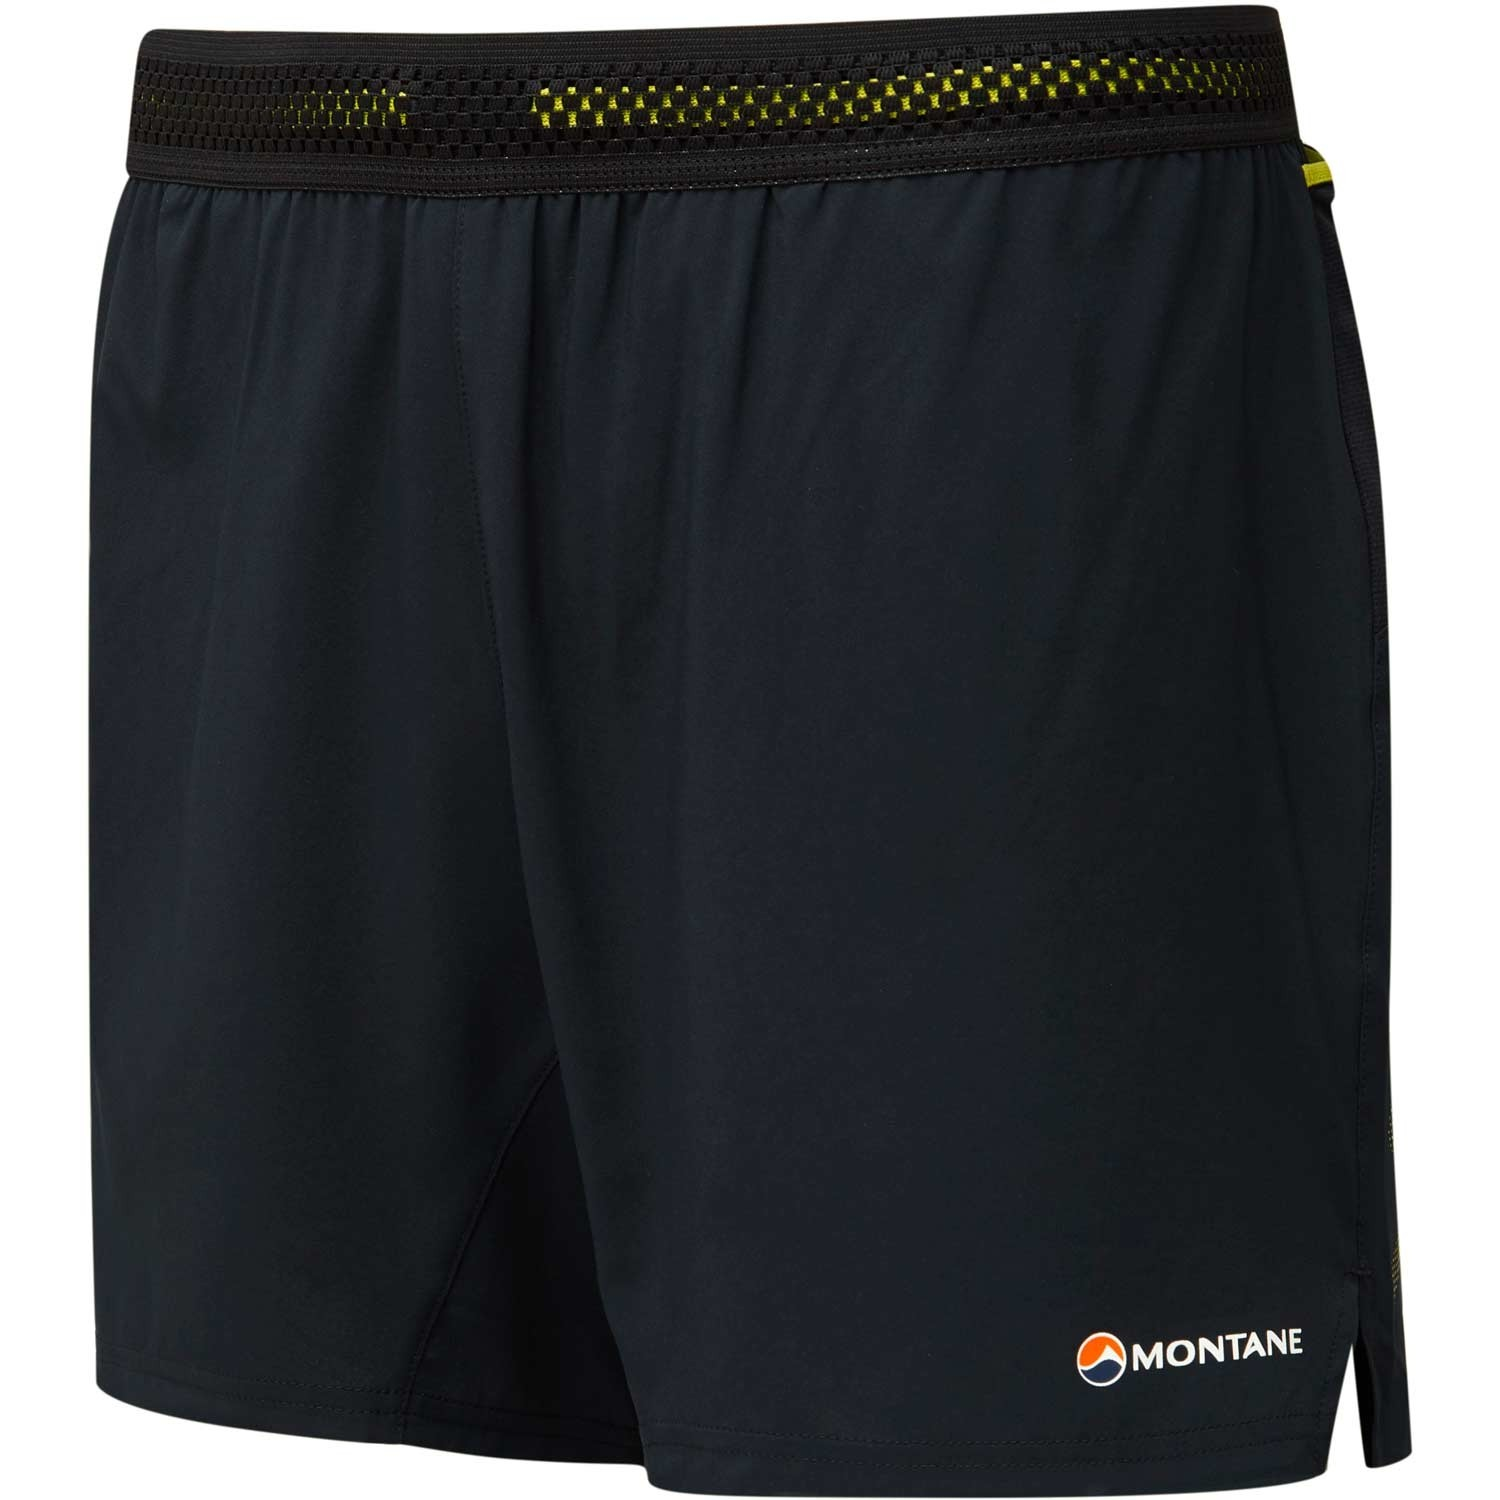 Montane Fang Men's Running Shorts - Black